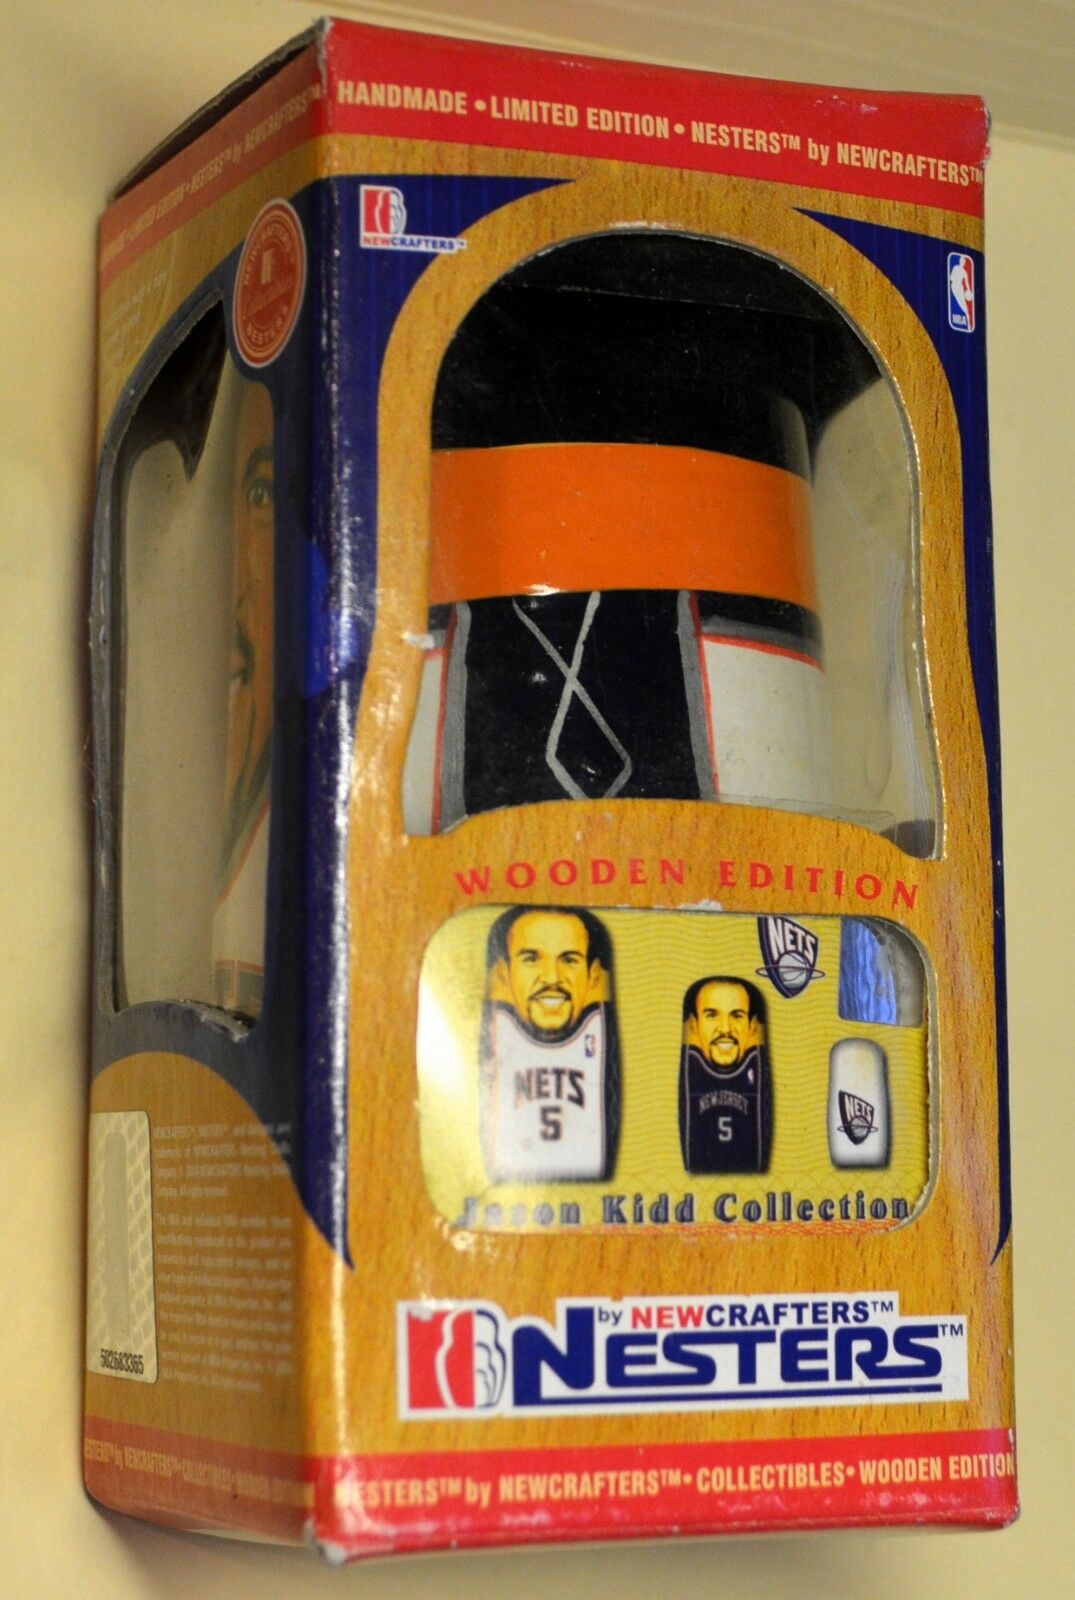 JASON KIDD Nesting Dolls NESTERS LIMITED EDITION WOODEN original box